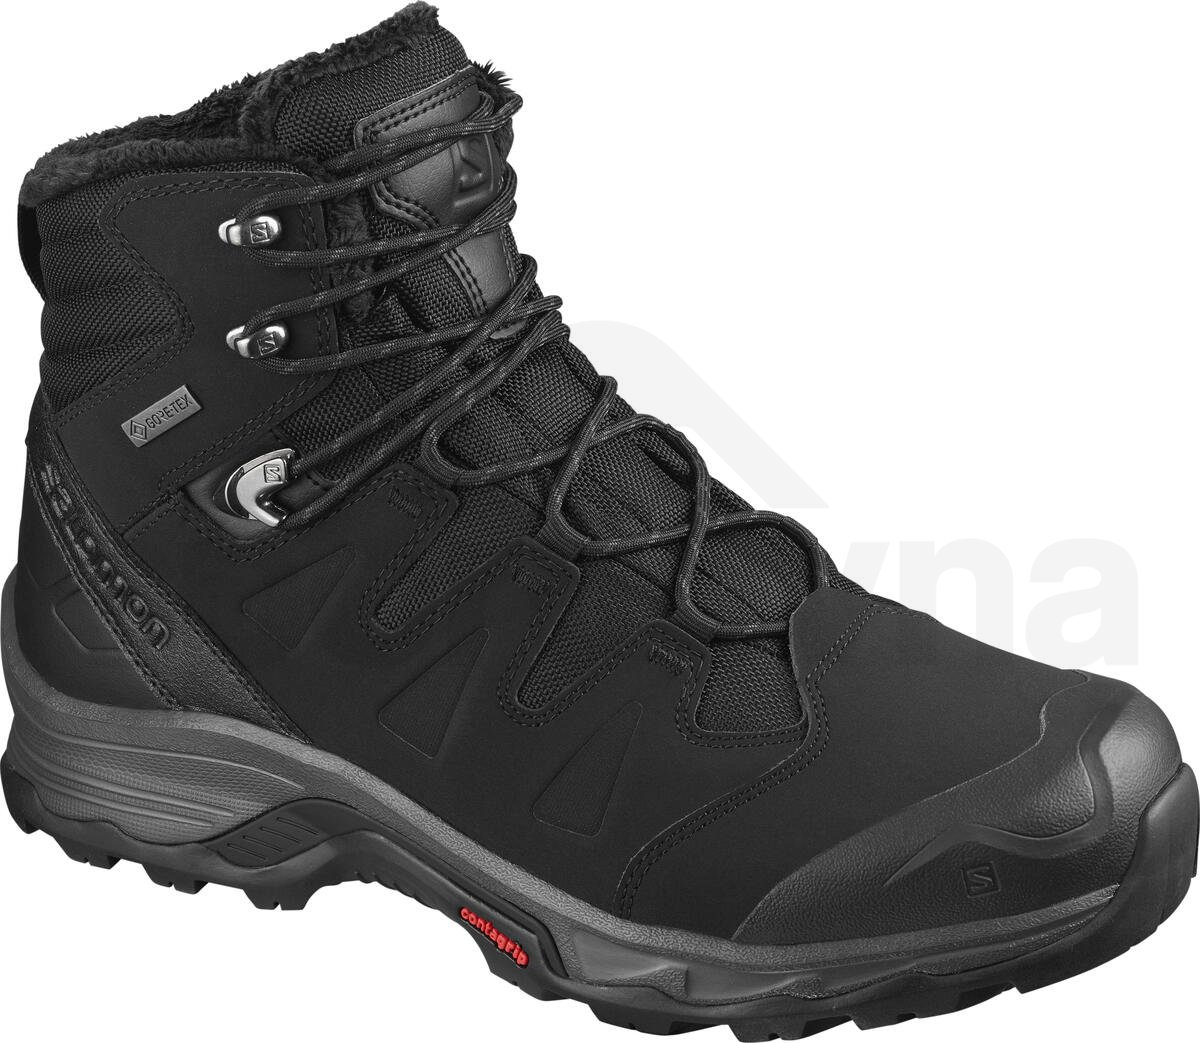 L41110300_0_GHO_QUEST WINTER GTX_black.jpg.cq5dam.web.1200.1200